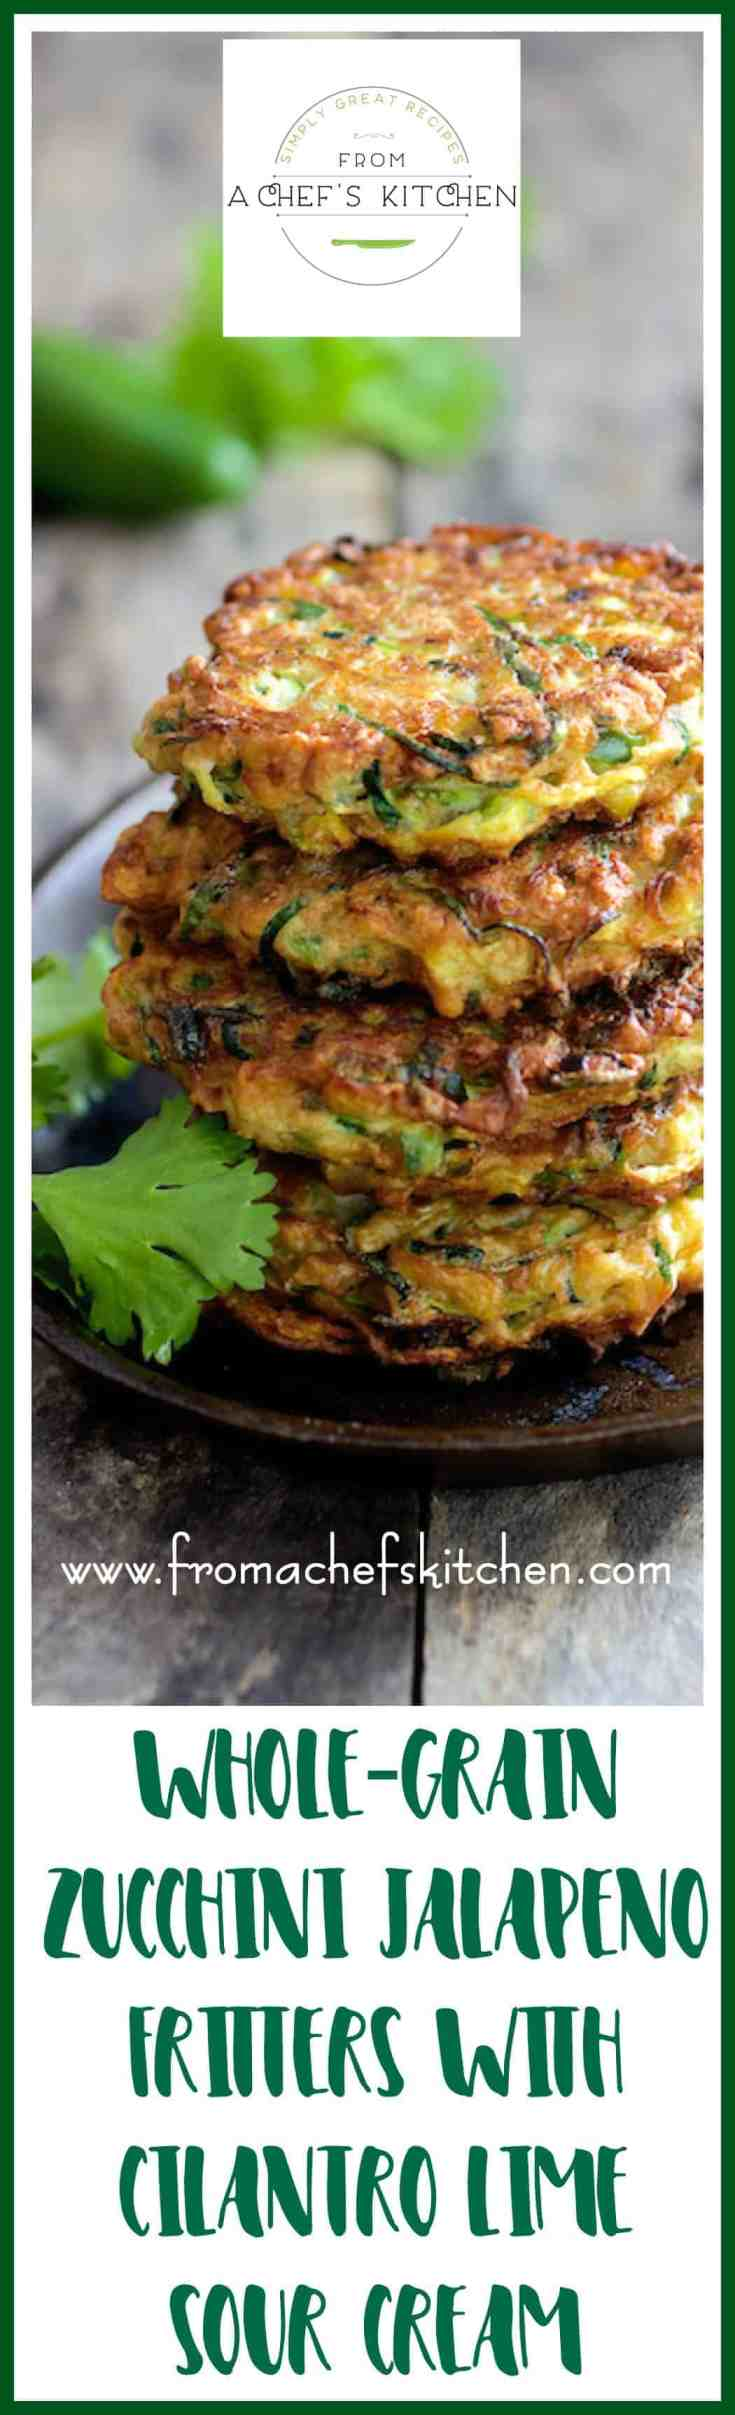 Whole Grain Zucchini Jalapeno Fritters are the traditional zucchini fritter reinvented with better-for-you whole-grain flour, some kick with fresh jalapeno and zippy Cilantro - Lime Sour Cream on the side!  #zucchini #zucchinifritter #wholegrain #vegetable #vegetarian